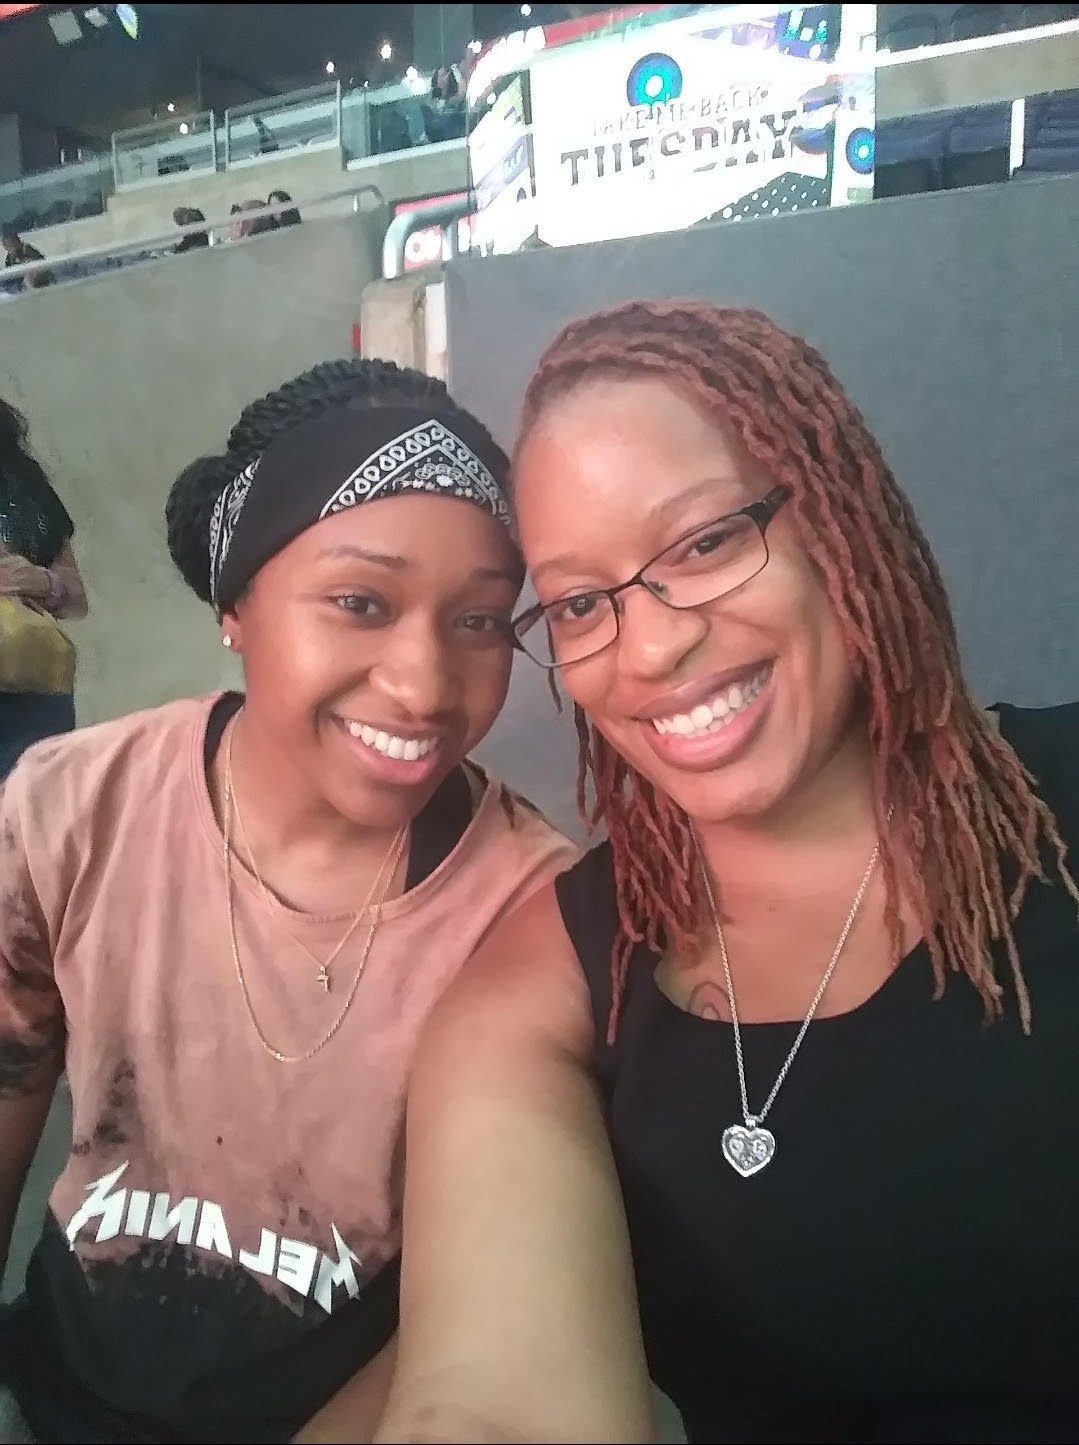 Precious and her wife taking a selfie at a stadium